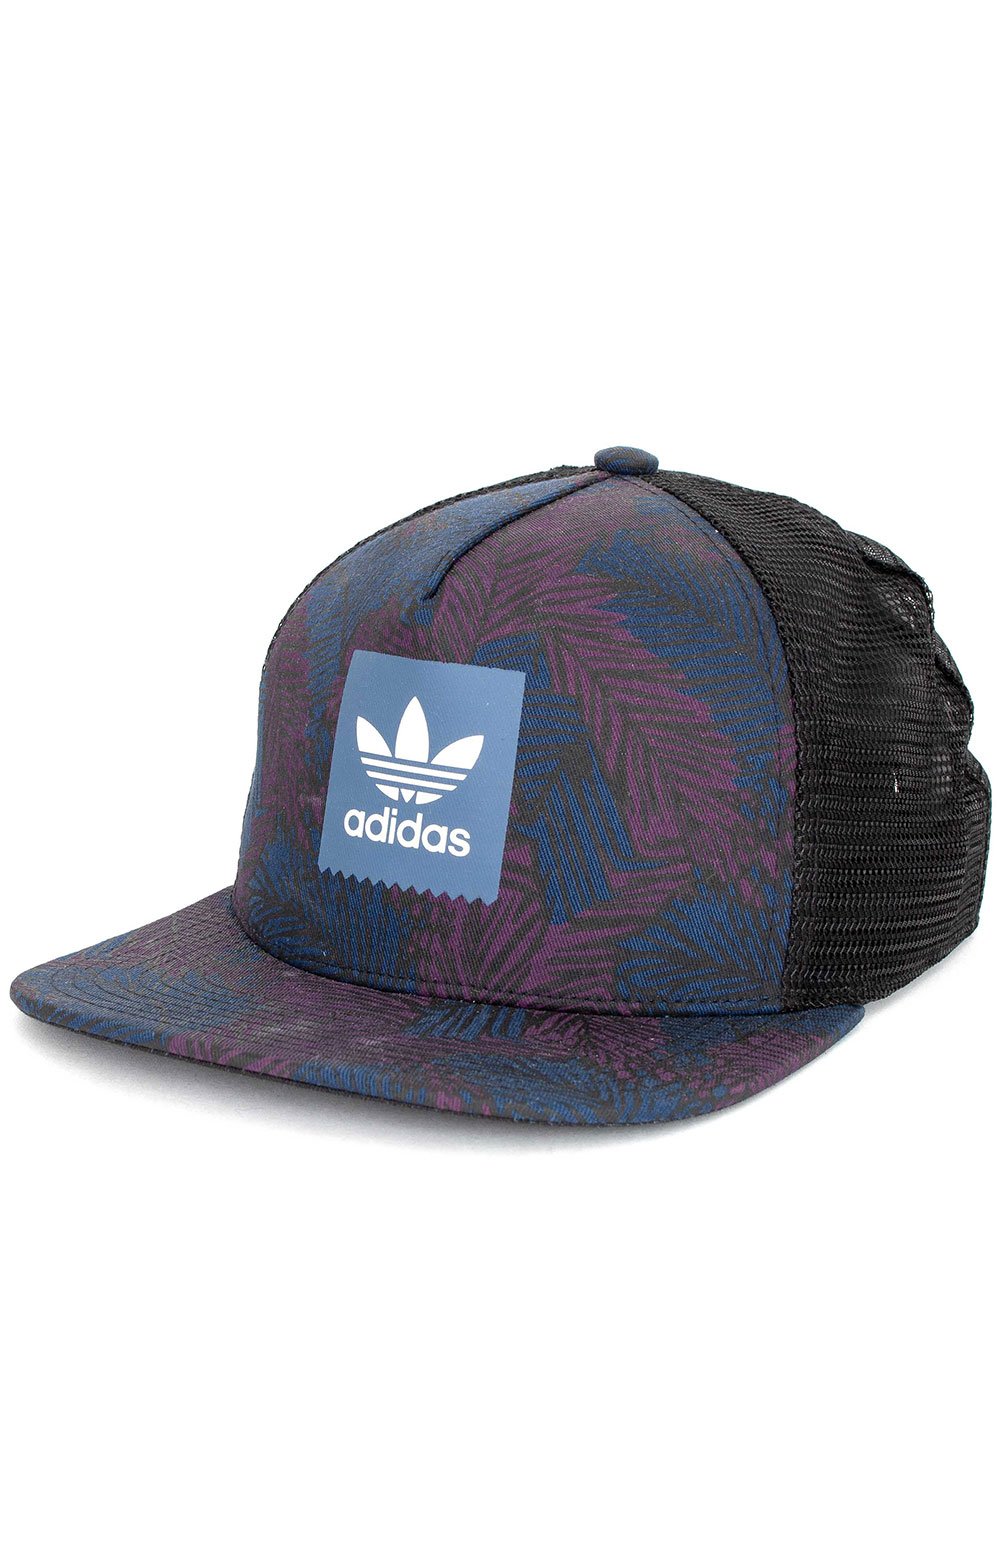 Palm Trucker Hat - Navy